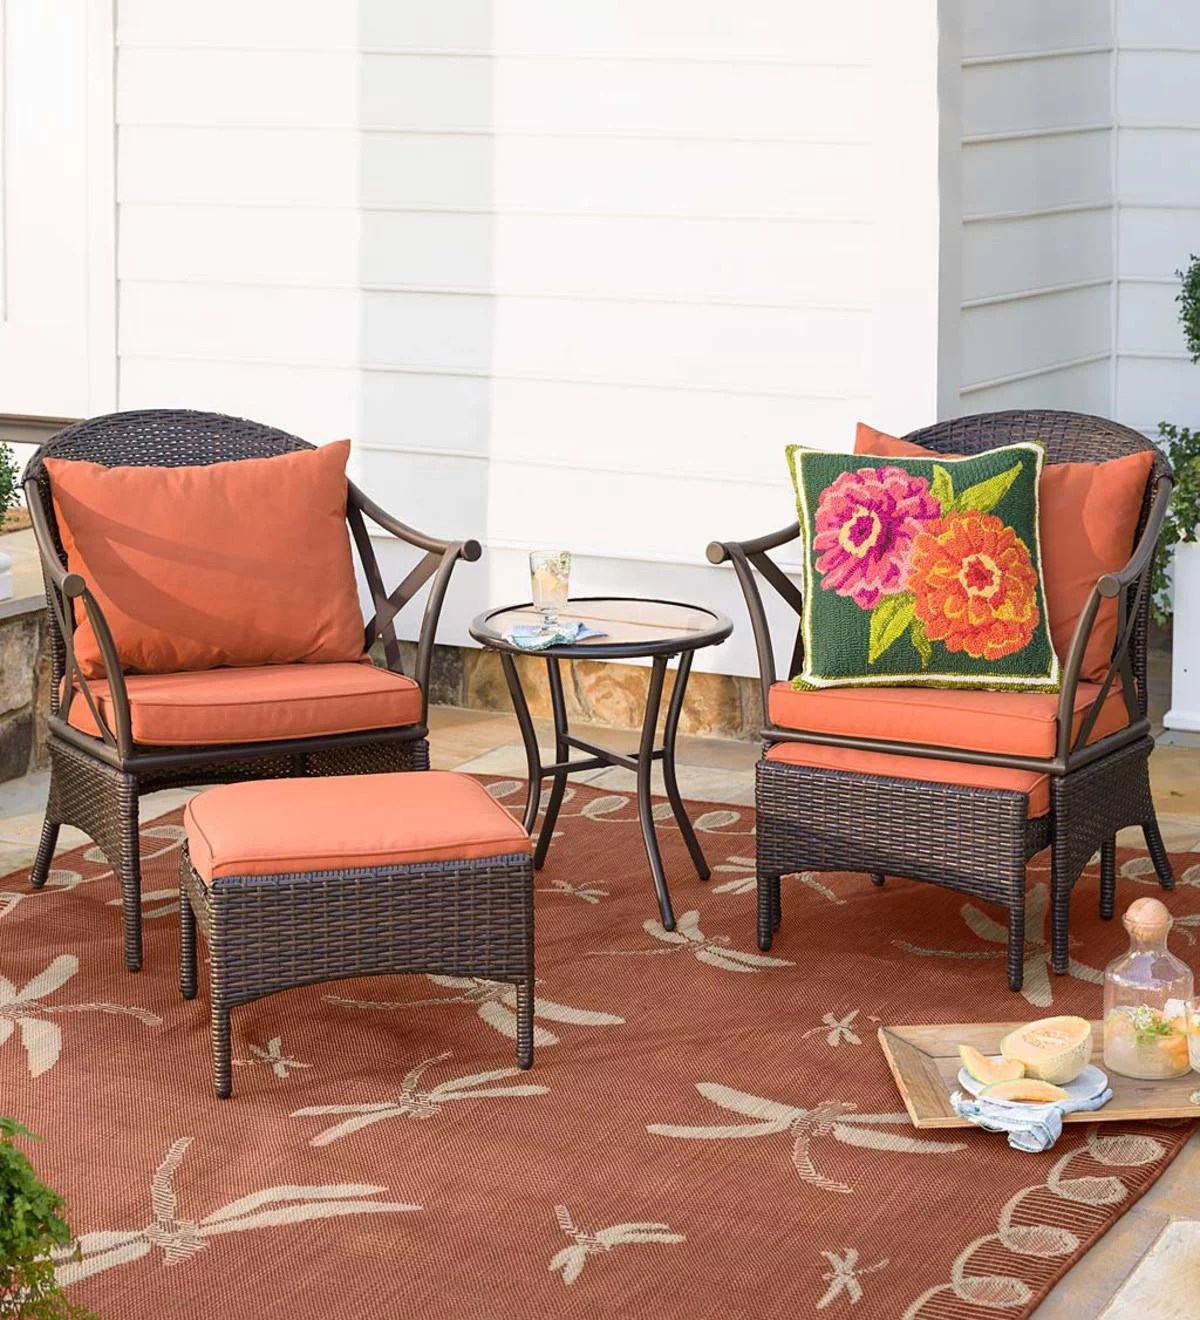 wicker patio 5 piece set with 2 chairs 2 ottomans side table cushions